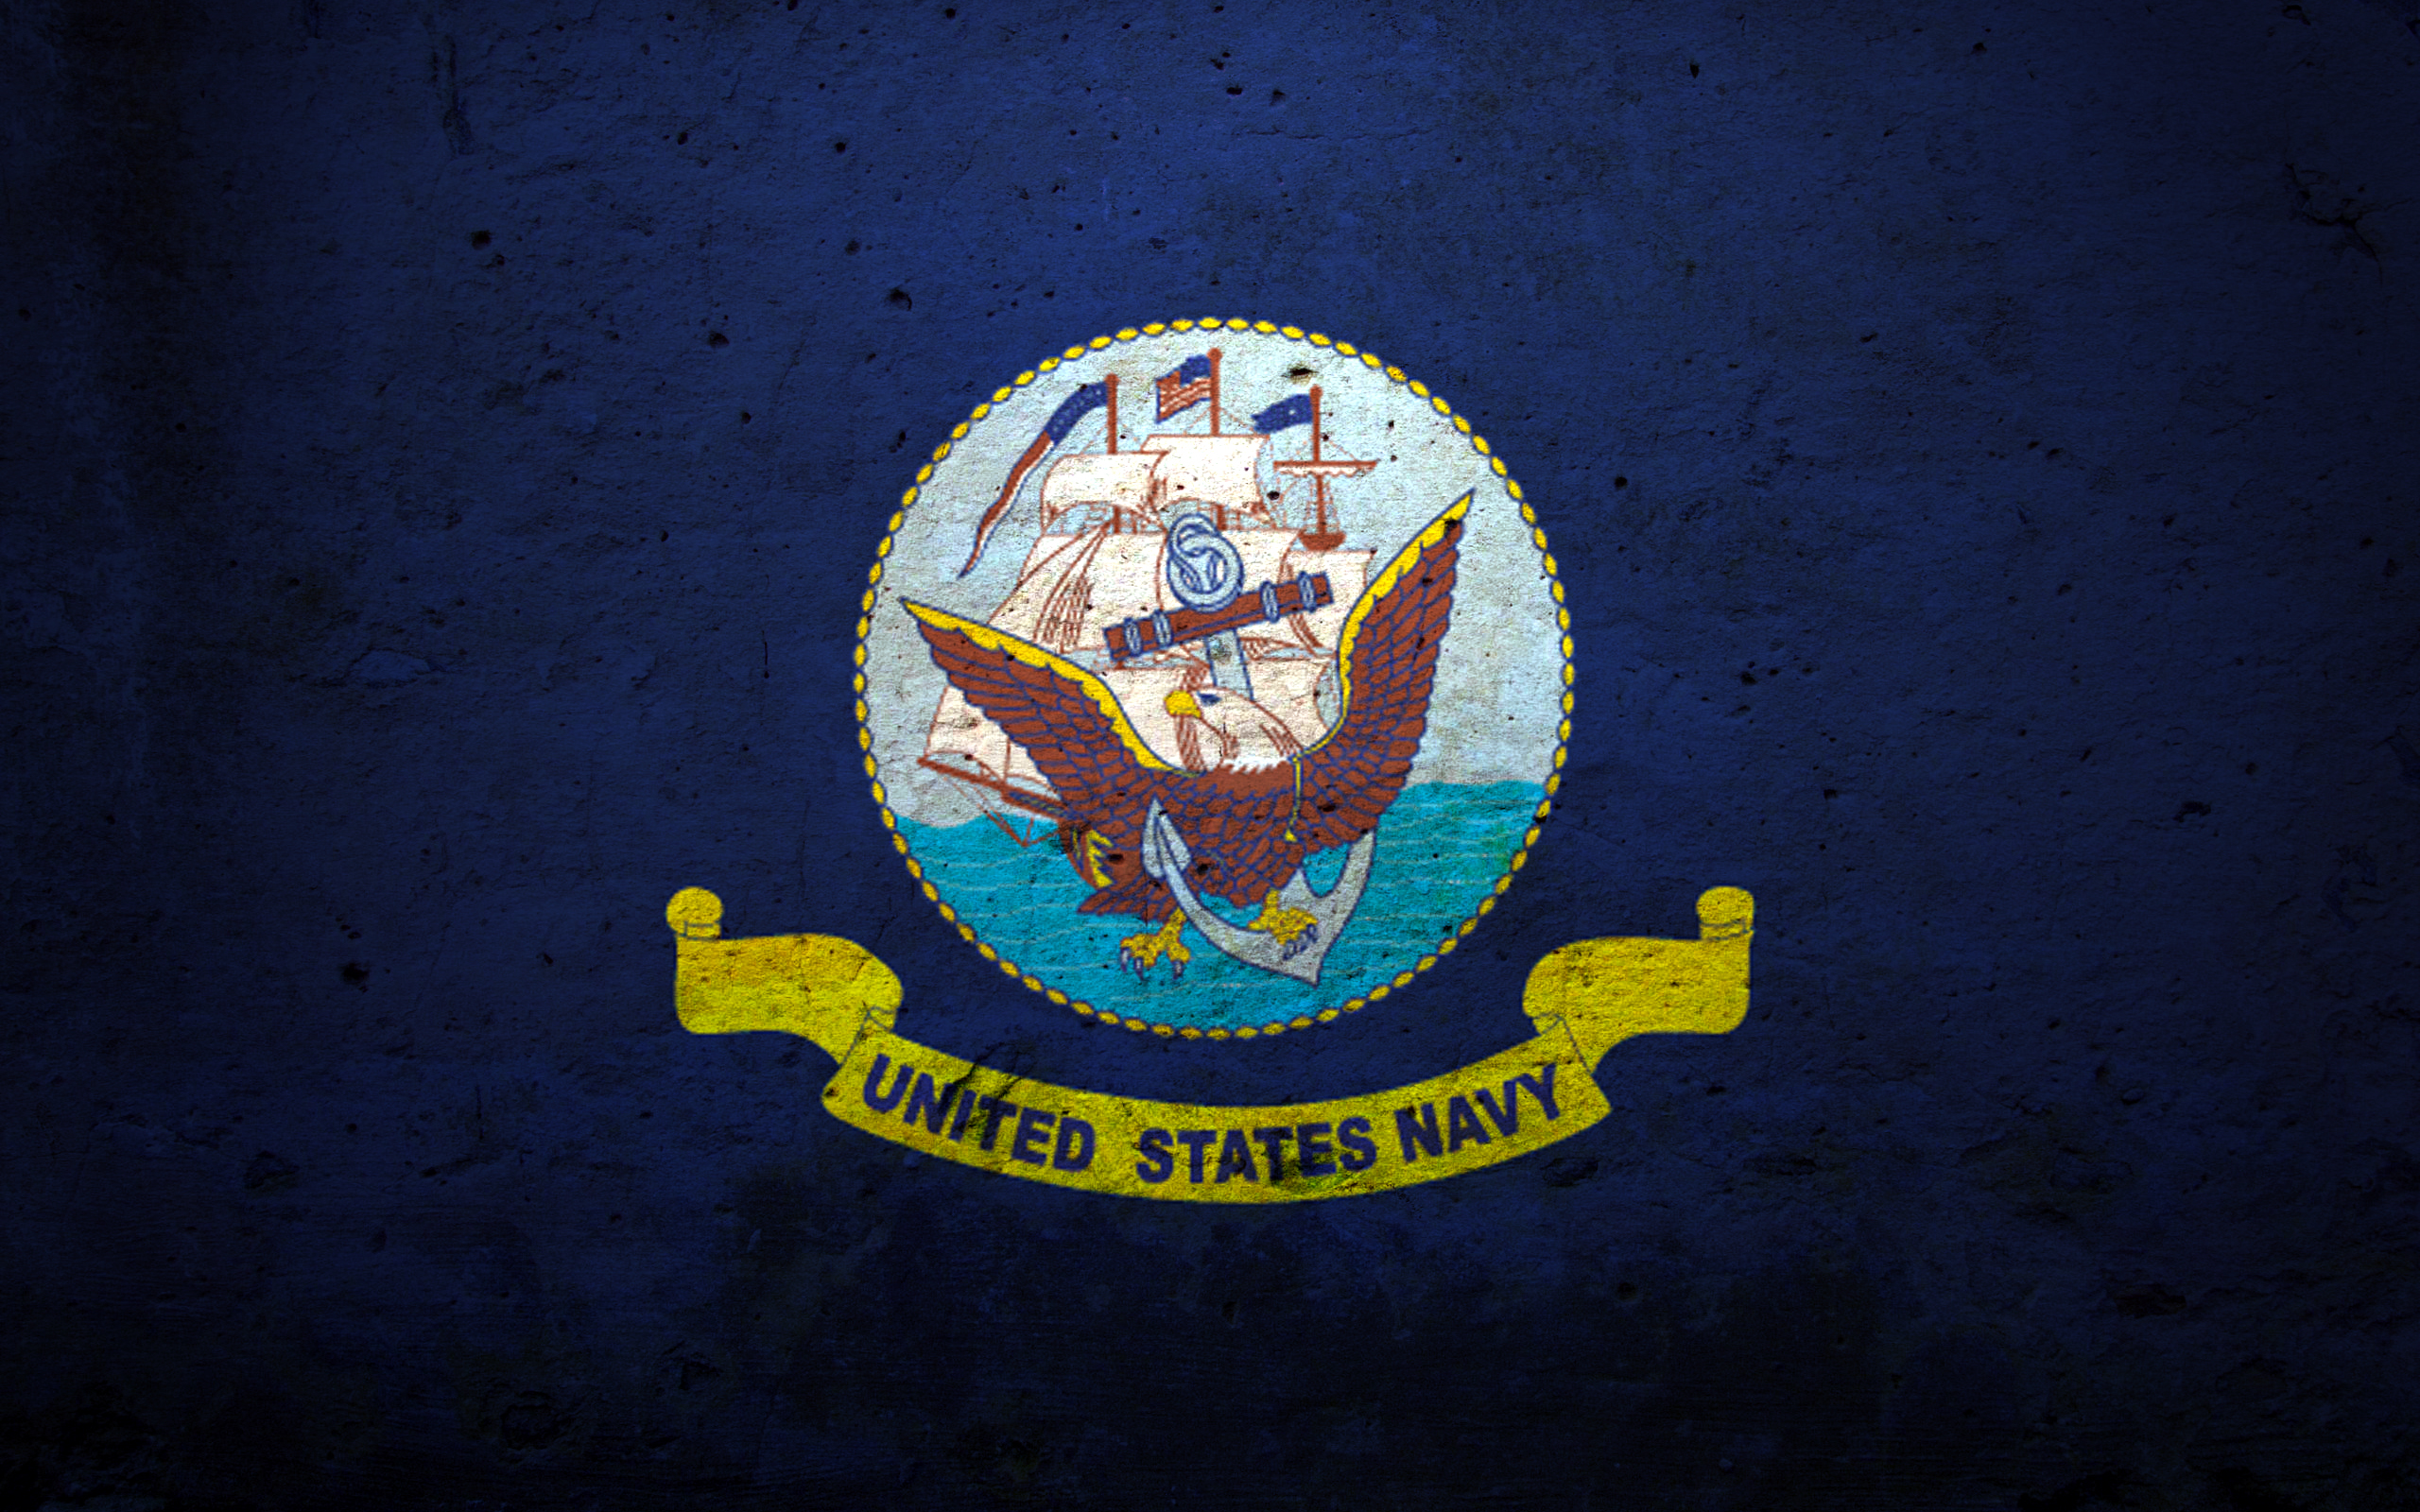 Navy Logo Wallpaper